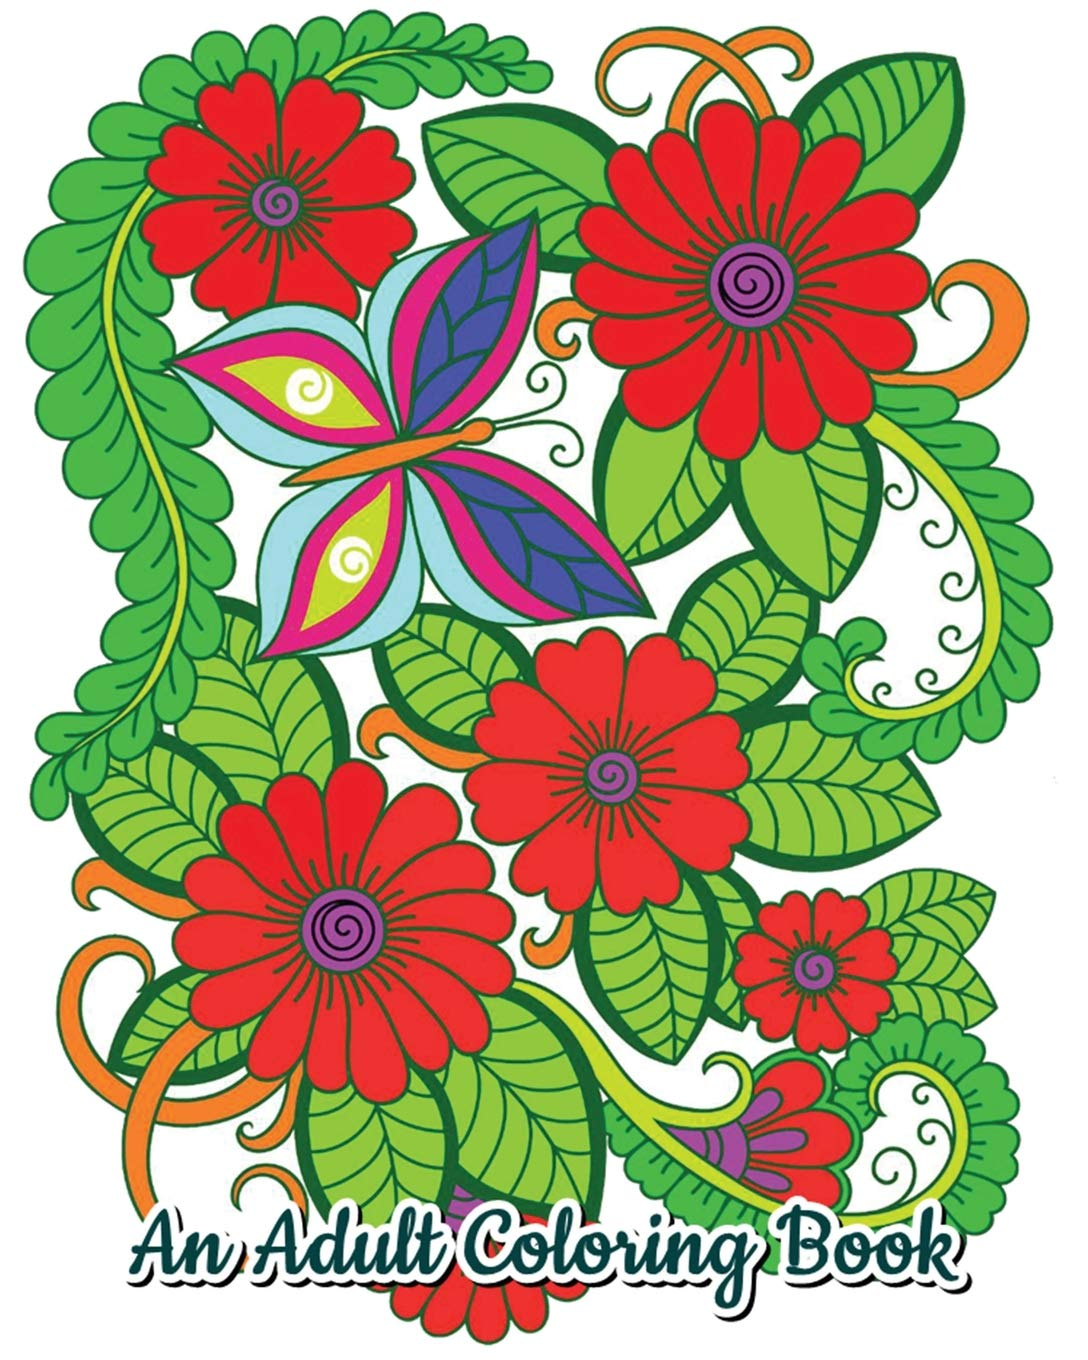 Amazon Com An Adult Coloring Book Stress Relieving Flower Designs Beautiful Flower Drawings Perfect For Flower Lovers 9781727139006 Jason Caron Books